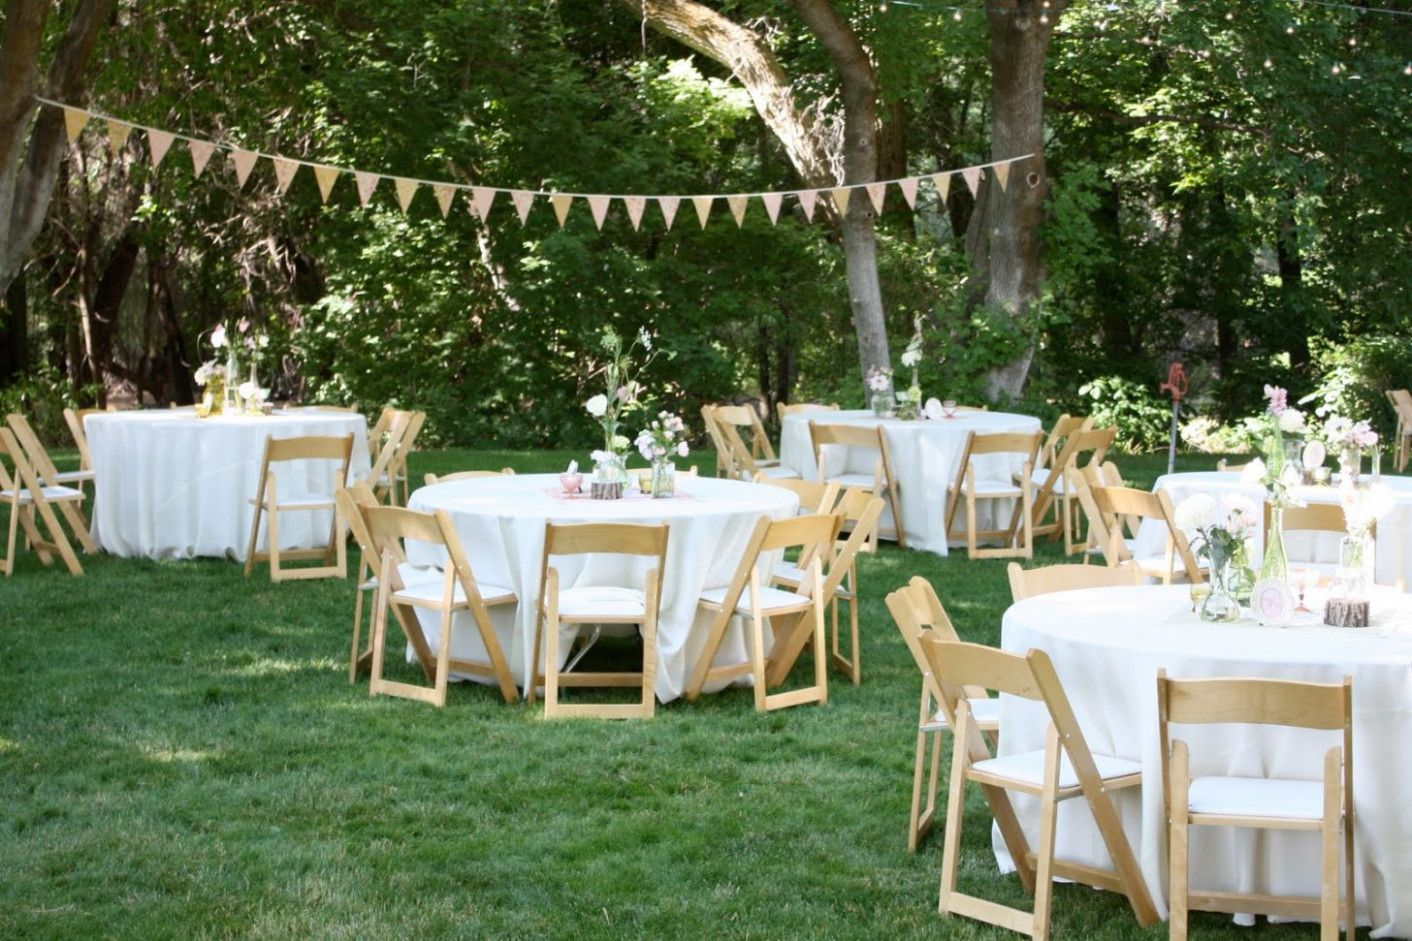 Casual Backyard Wedding At Home | Cheap backyard wedding ...